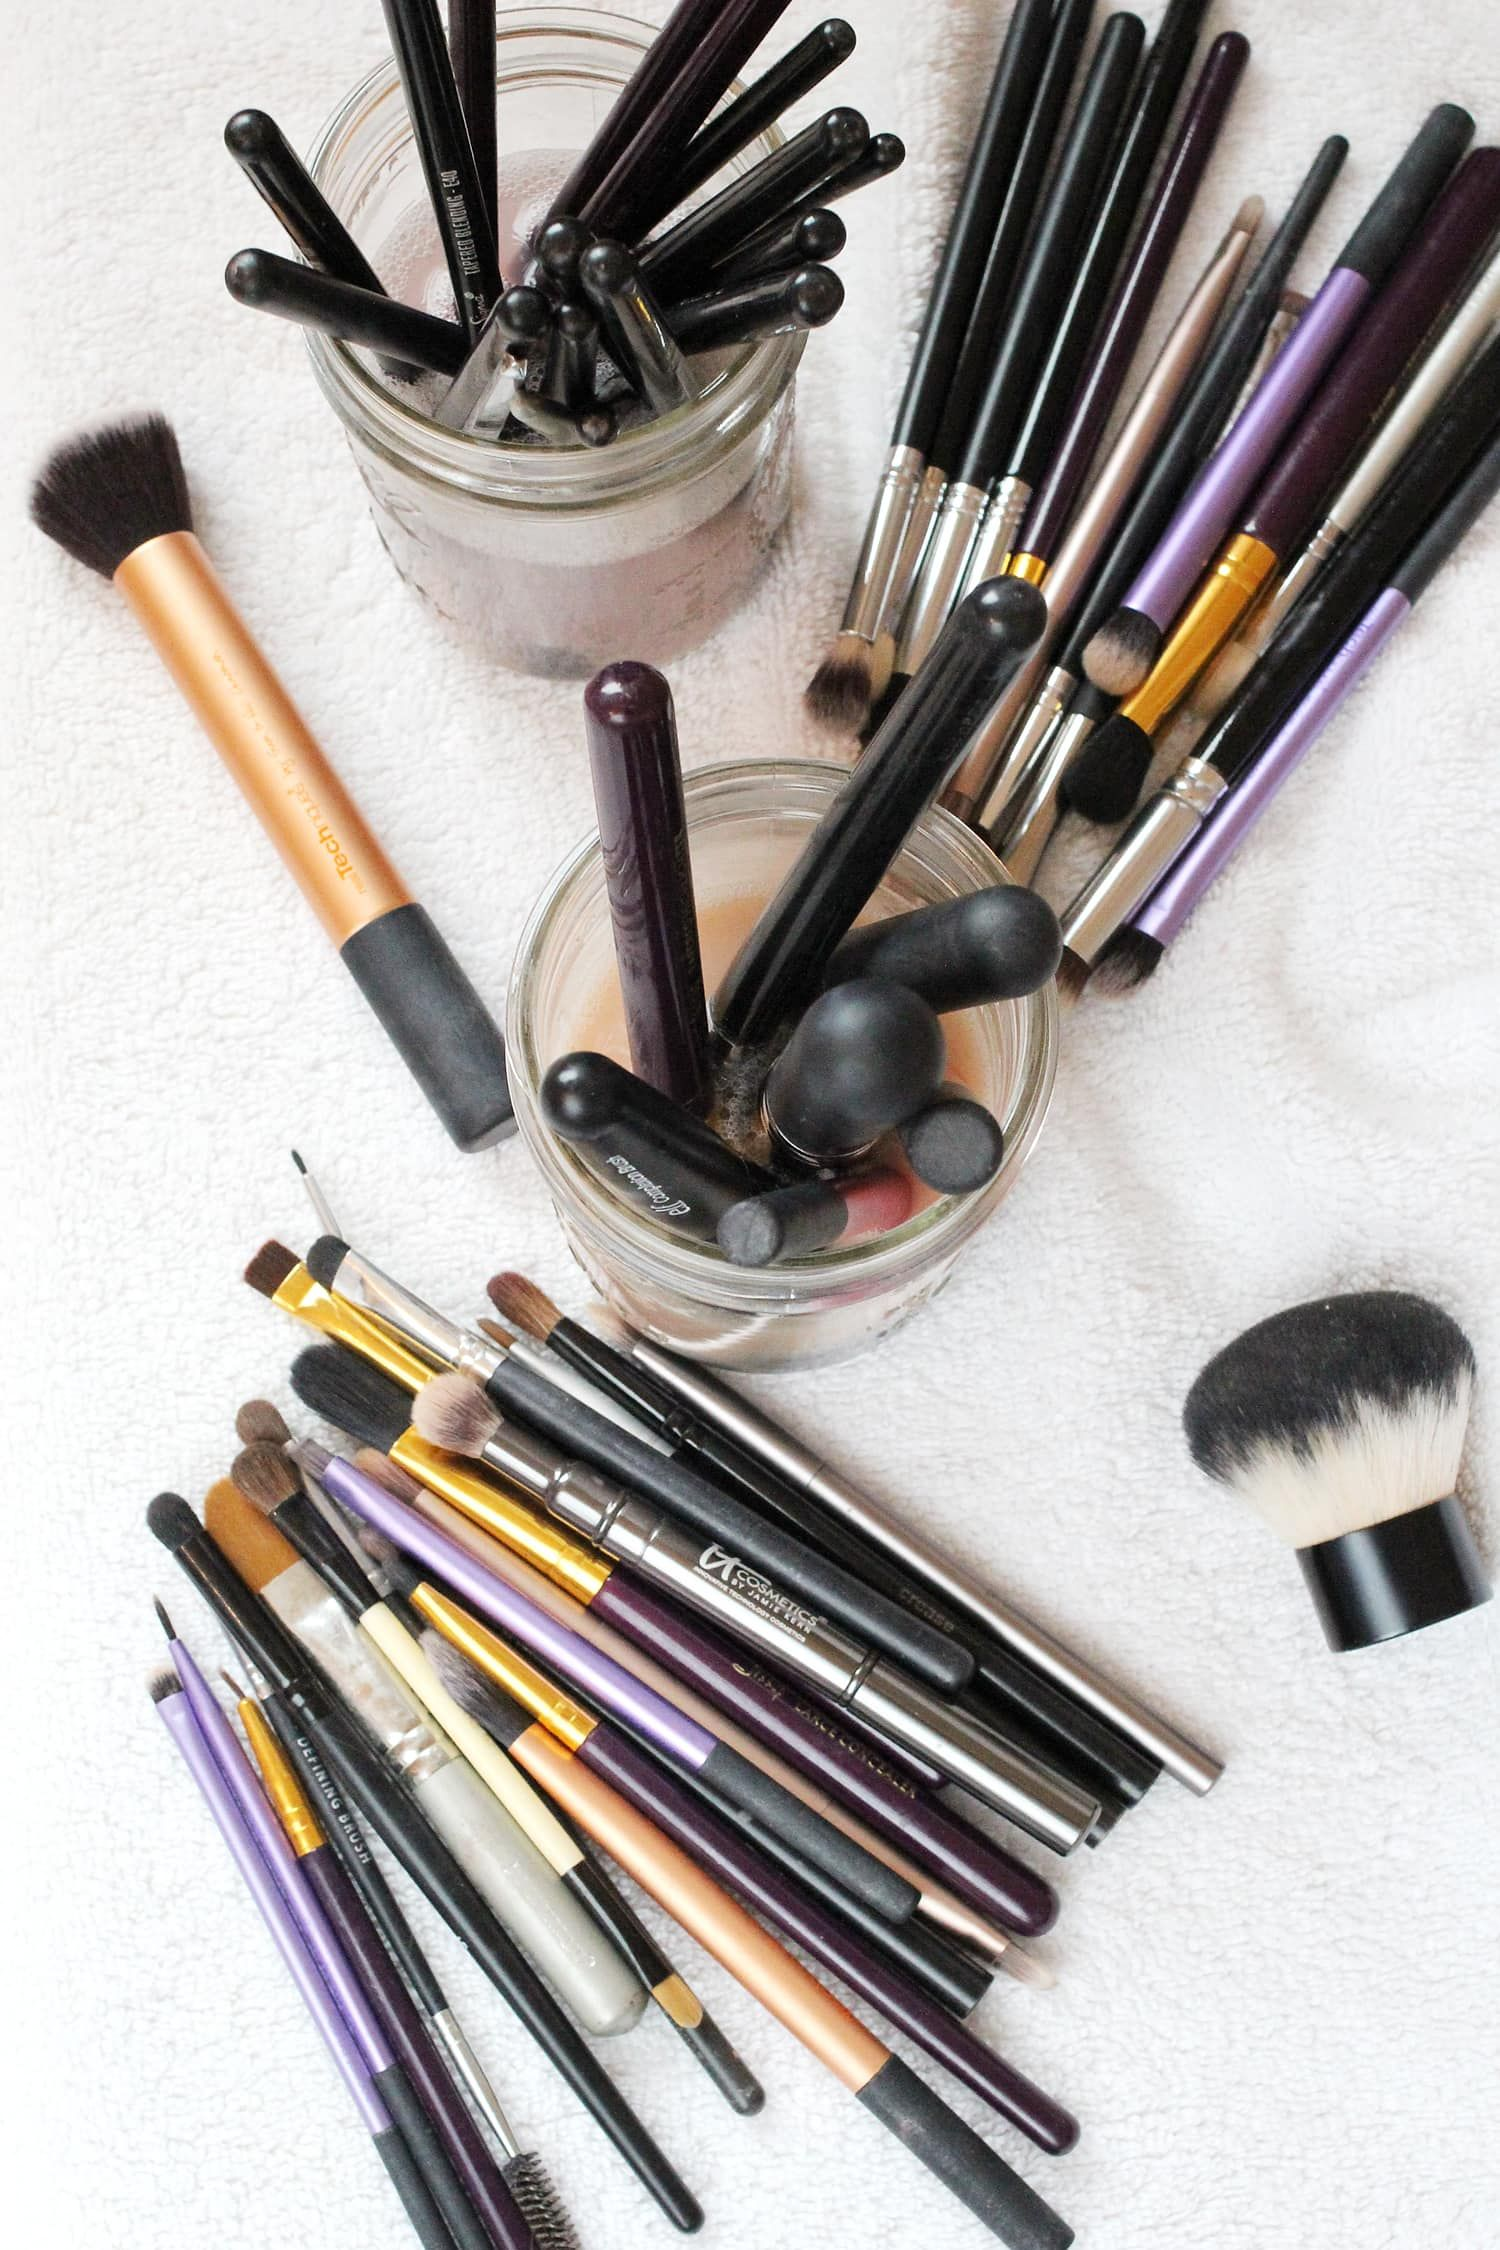 How to Clean Makeup Brushes (Cheap, Quick & Easy!) How